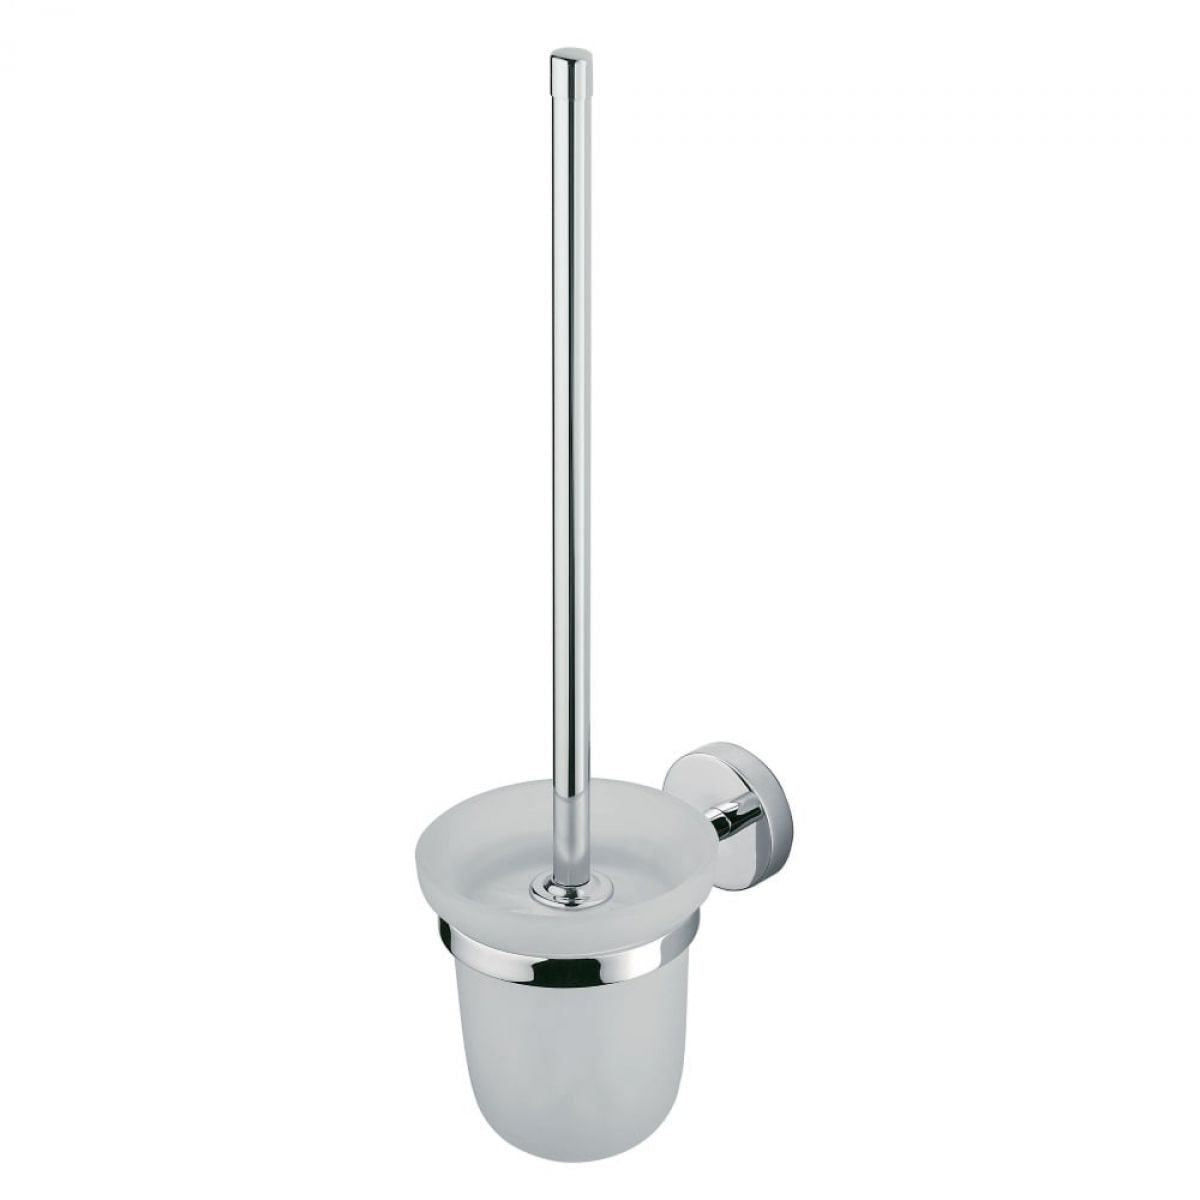 Forum Toilet Brush & Holder - blueskybathrooms